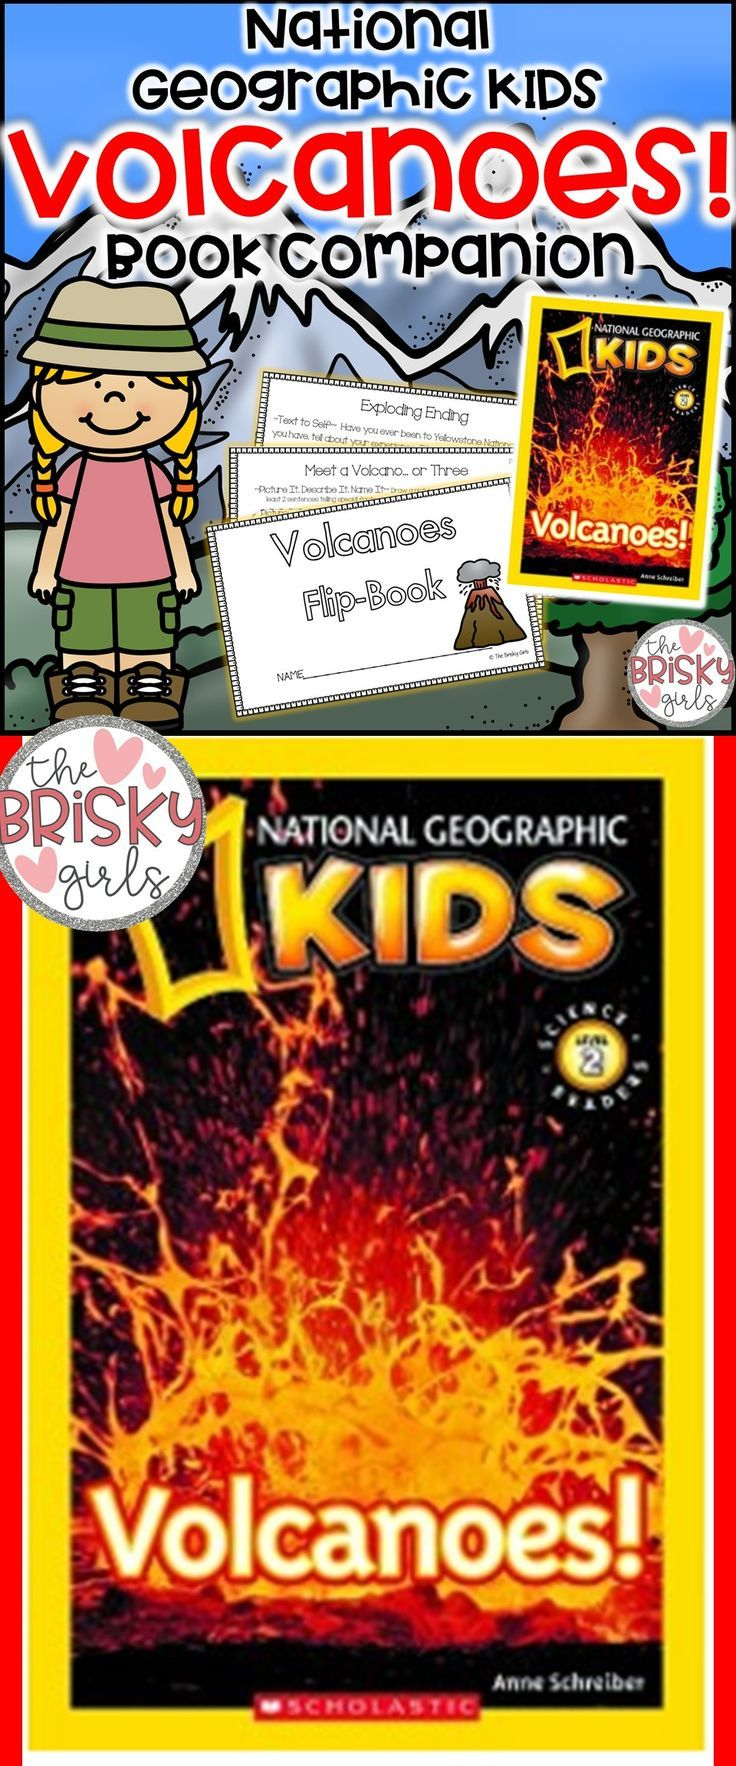 Volcanoes Volcano Information Volcano Reading Passages The Ring Of Fire Tectonic Plates Science For National Geographic Kids Flip Book Resource Classroom [ 1766 x 736 Pixel ]